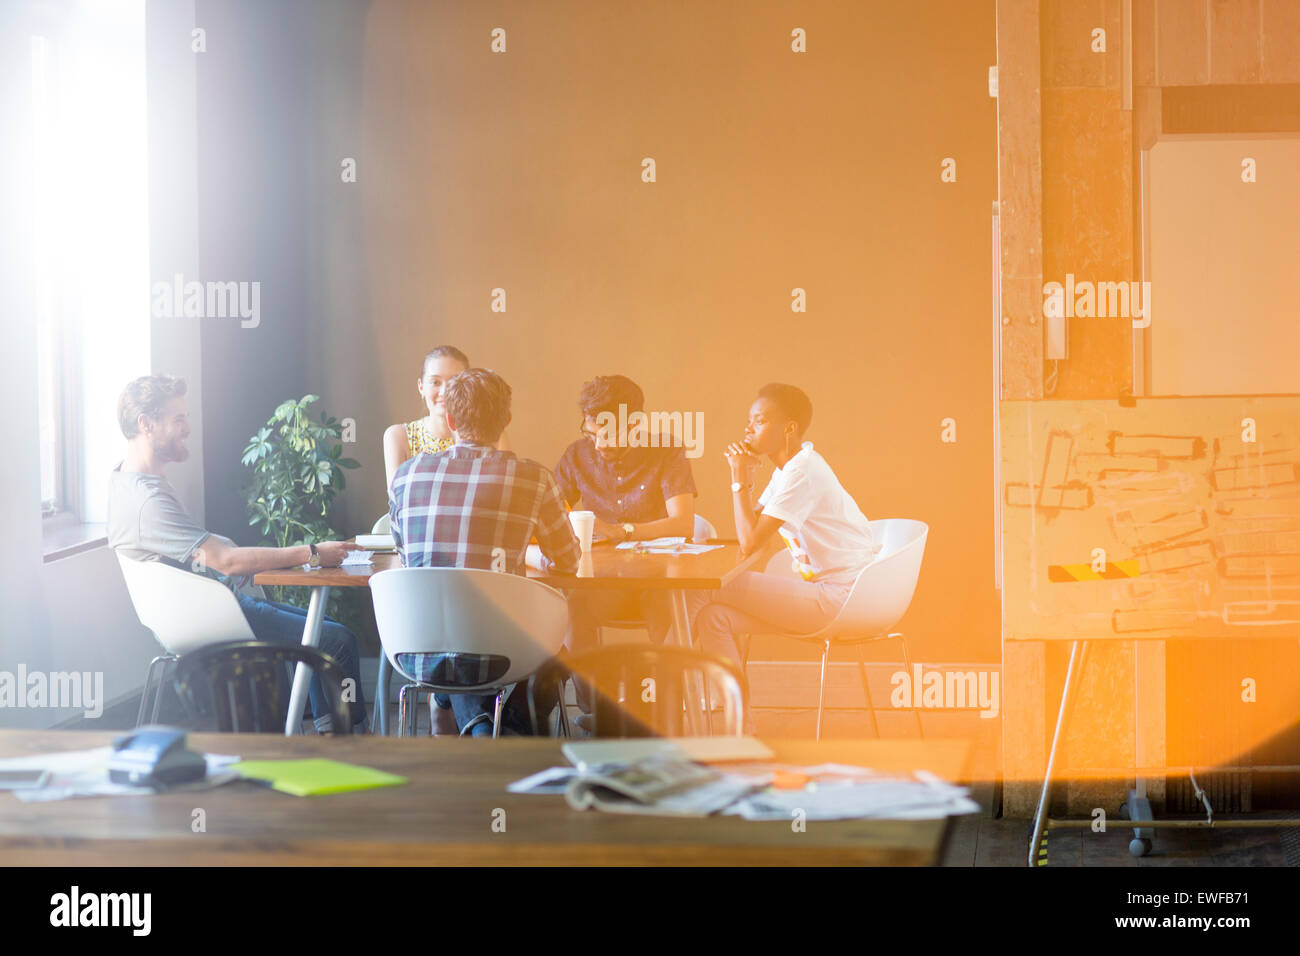 Lens flare over creative business people meeting at office table - Stock Image